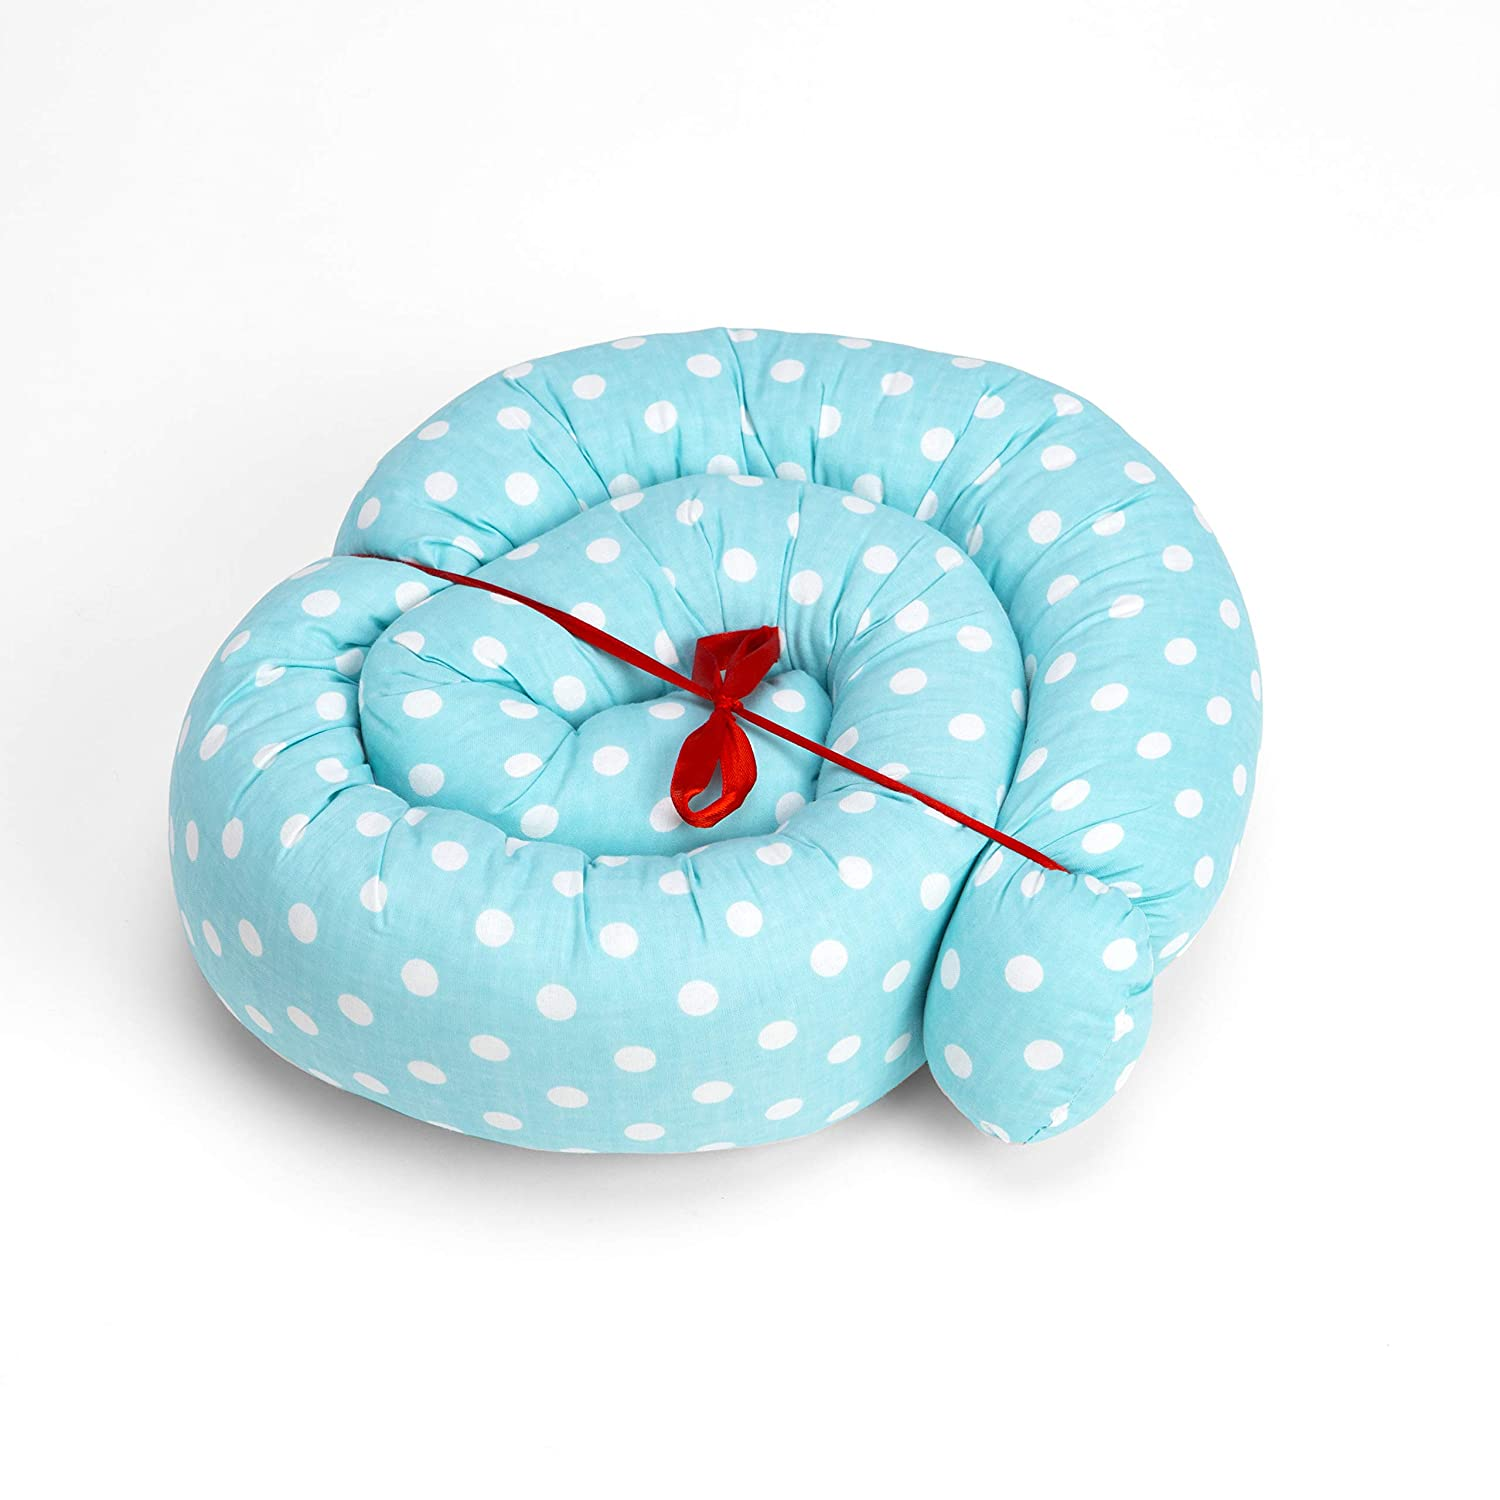 Car Pattern, 210 cm Allergy Hollowfibre Cotton Cushion Nursery Snake Lumbar Baby Nest Cot Protector Bed Roll Baby Cot Bumper Roll Anti